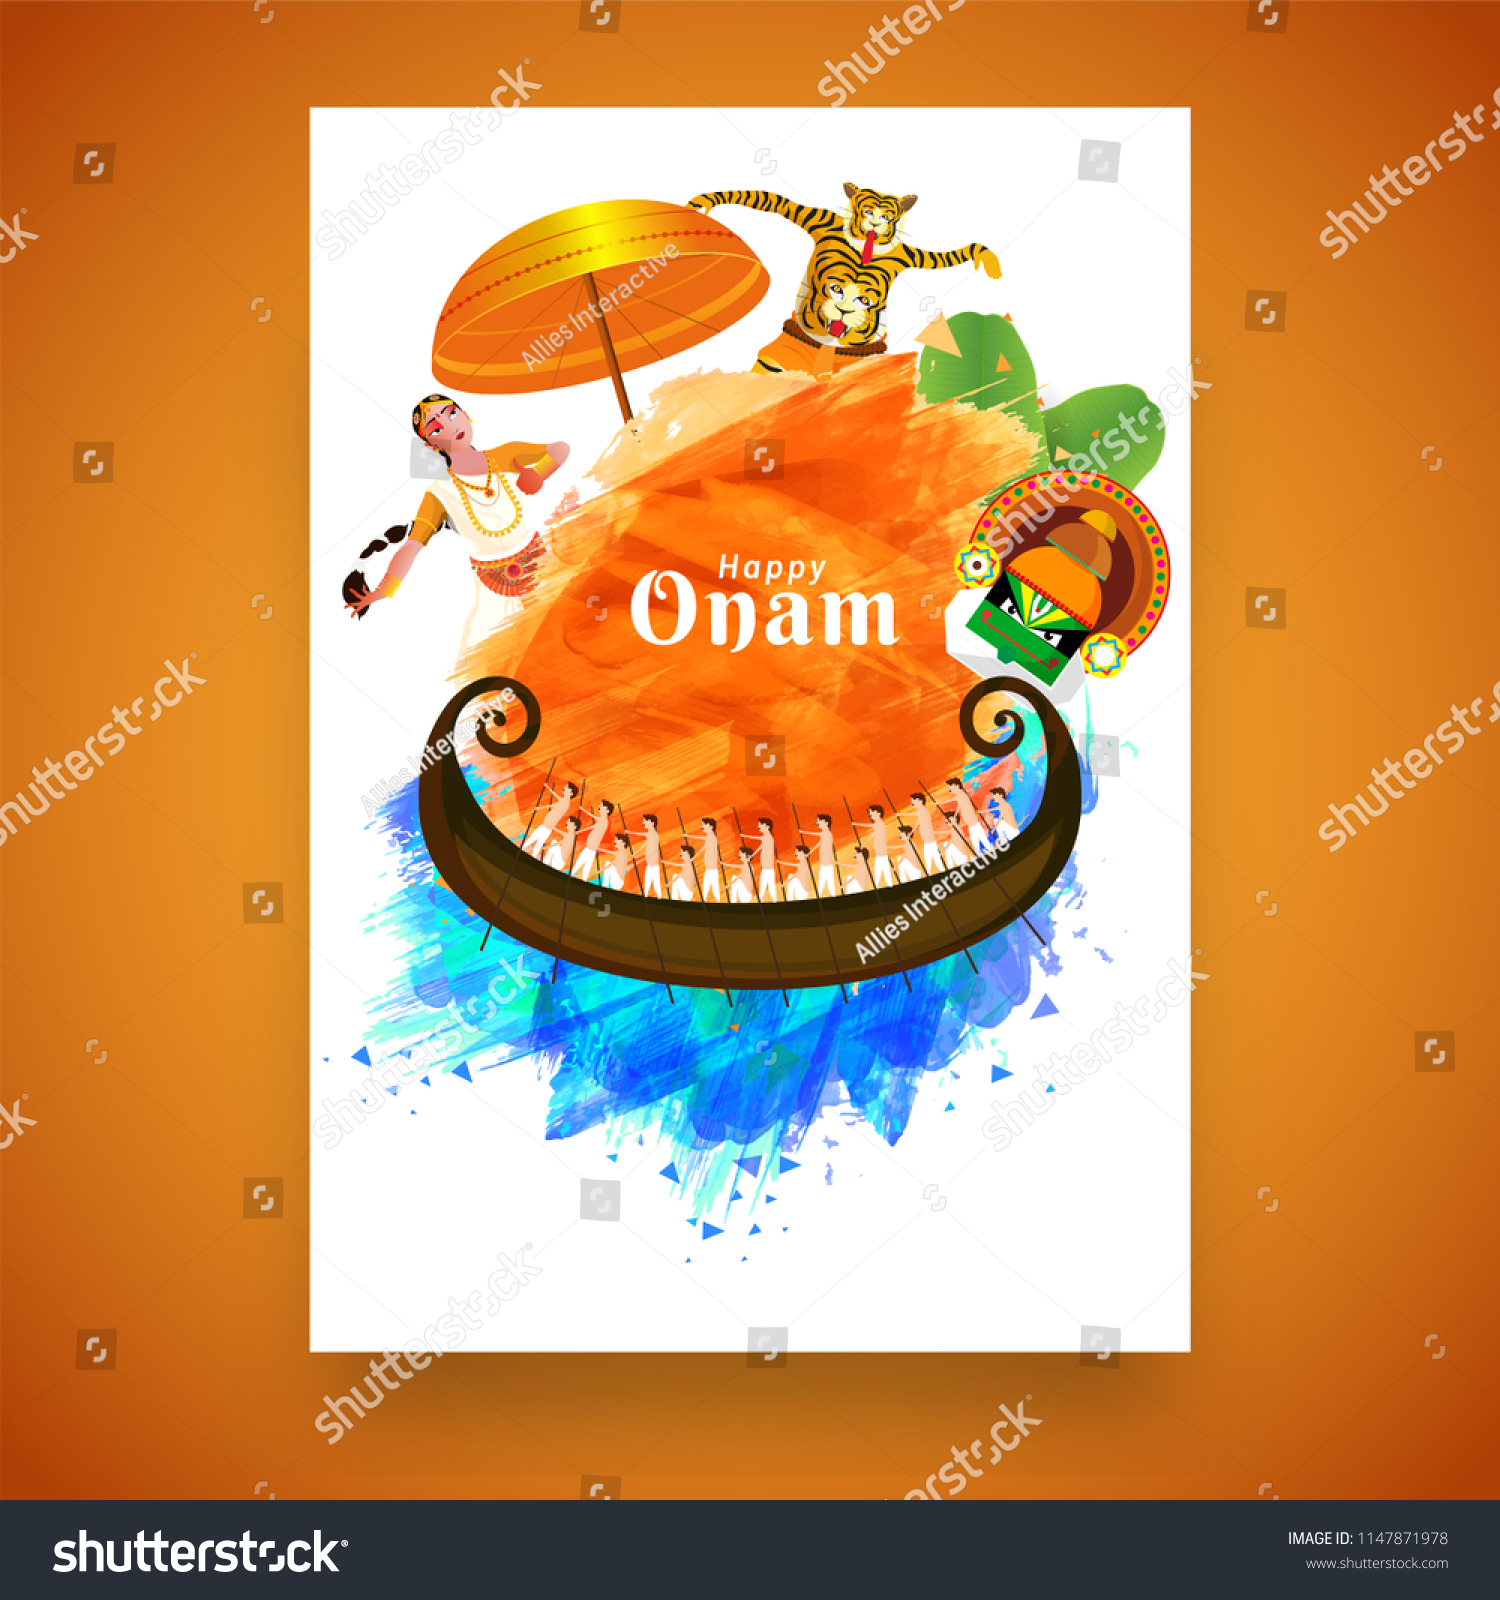 South Indian Festival Happy Onam Greeting Stock Vector Royalty Free